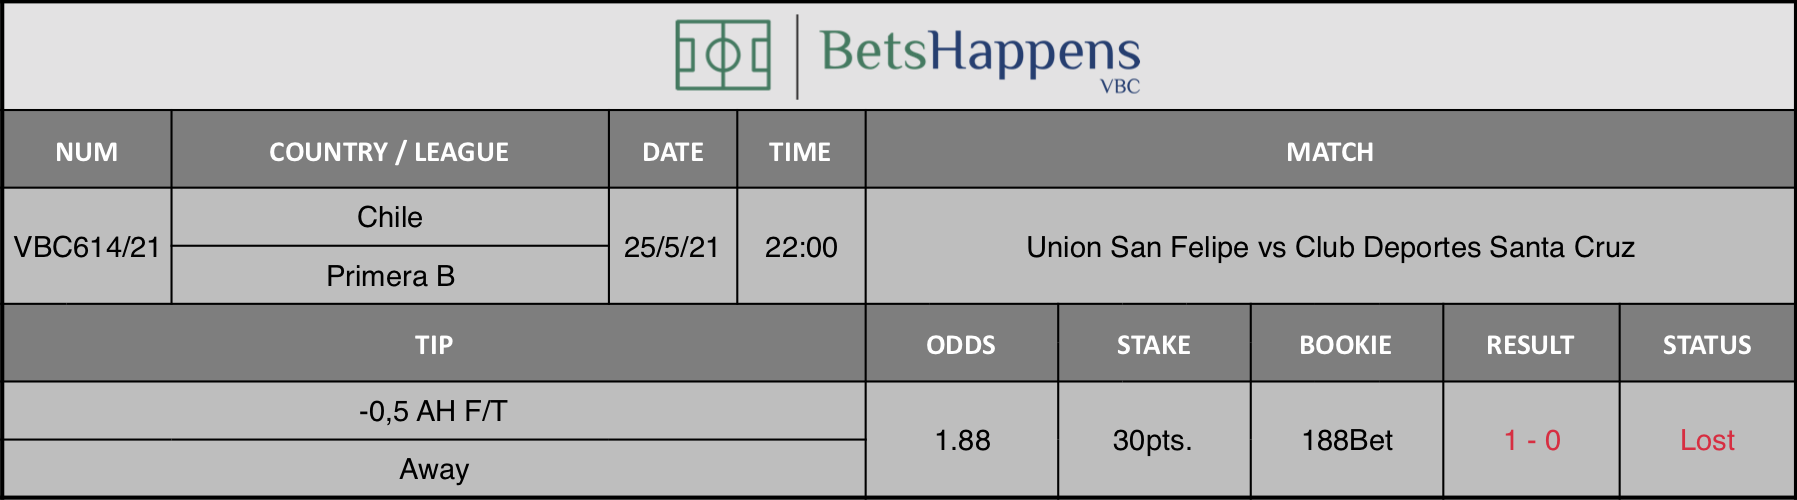 Results of our tip for the Union San Felipe vs Club Deportes Santa Cruz match where -0,5 AH F/T Away is recommended.